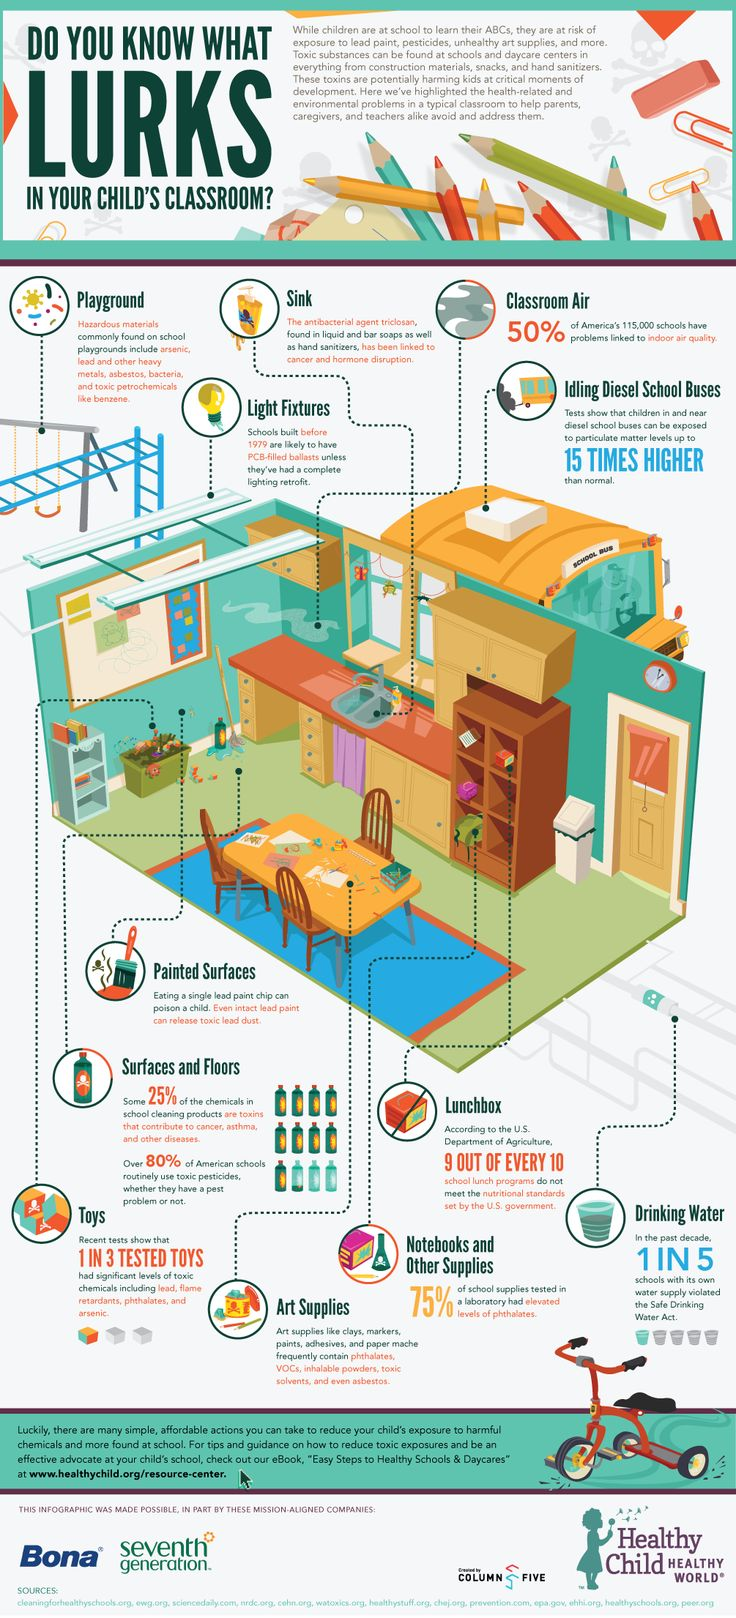 YIKES!  I wish I would have known about toxins as a teacher what I know now.  We would have avoided a TOXIC nightmare.  Although this is a great infographic, it fails to mention LAUNDRY TOXINS and perfumes–which can make you TIRED, give headaches, and be carcinogenic, too.  Share this if you care about students AND teachers.